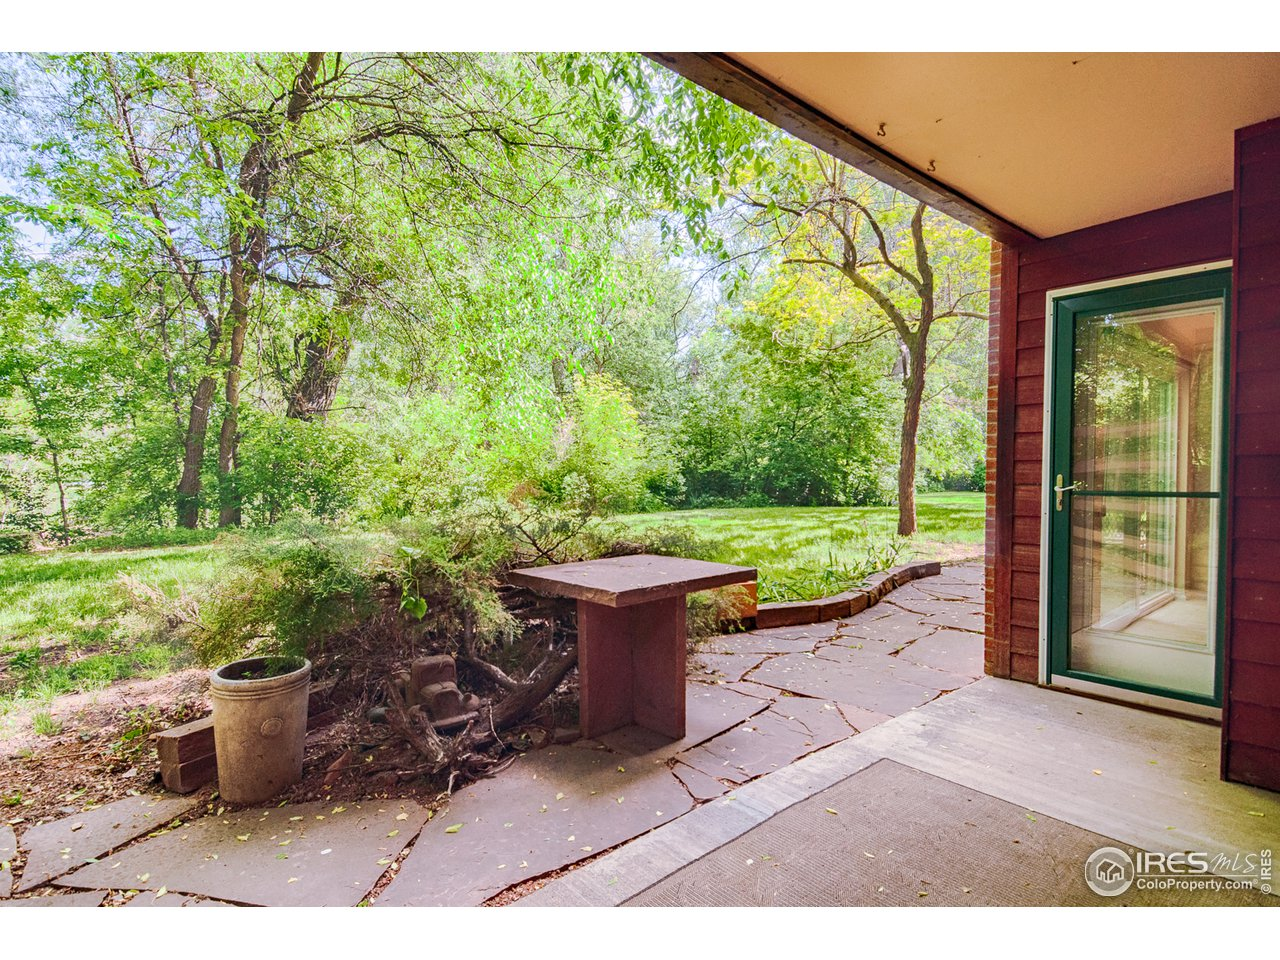 Private covered patio next to Boulder Creek